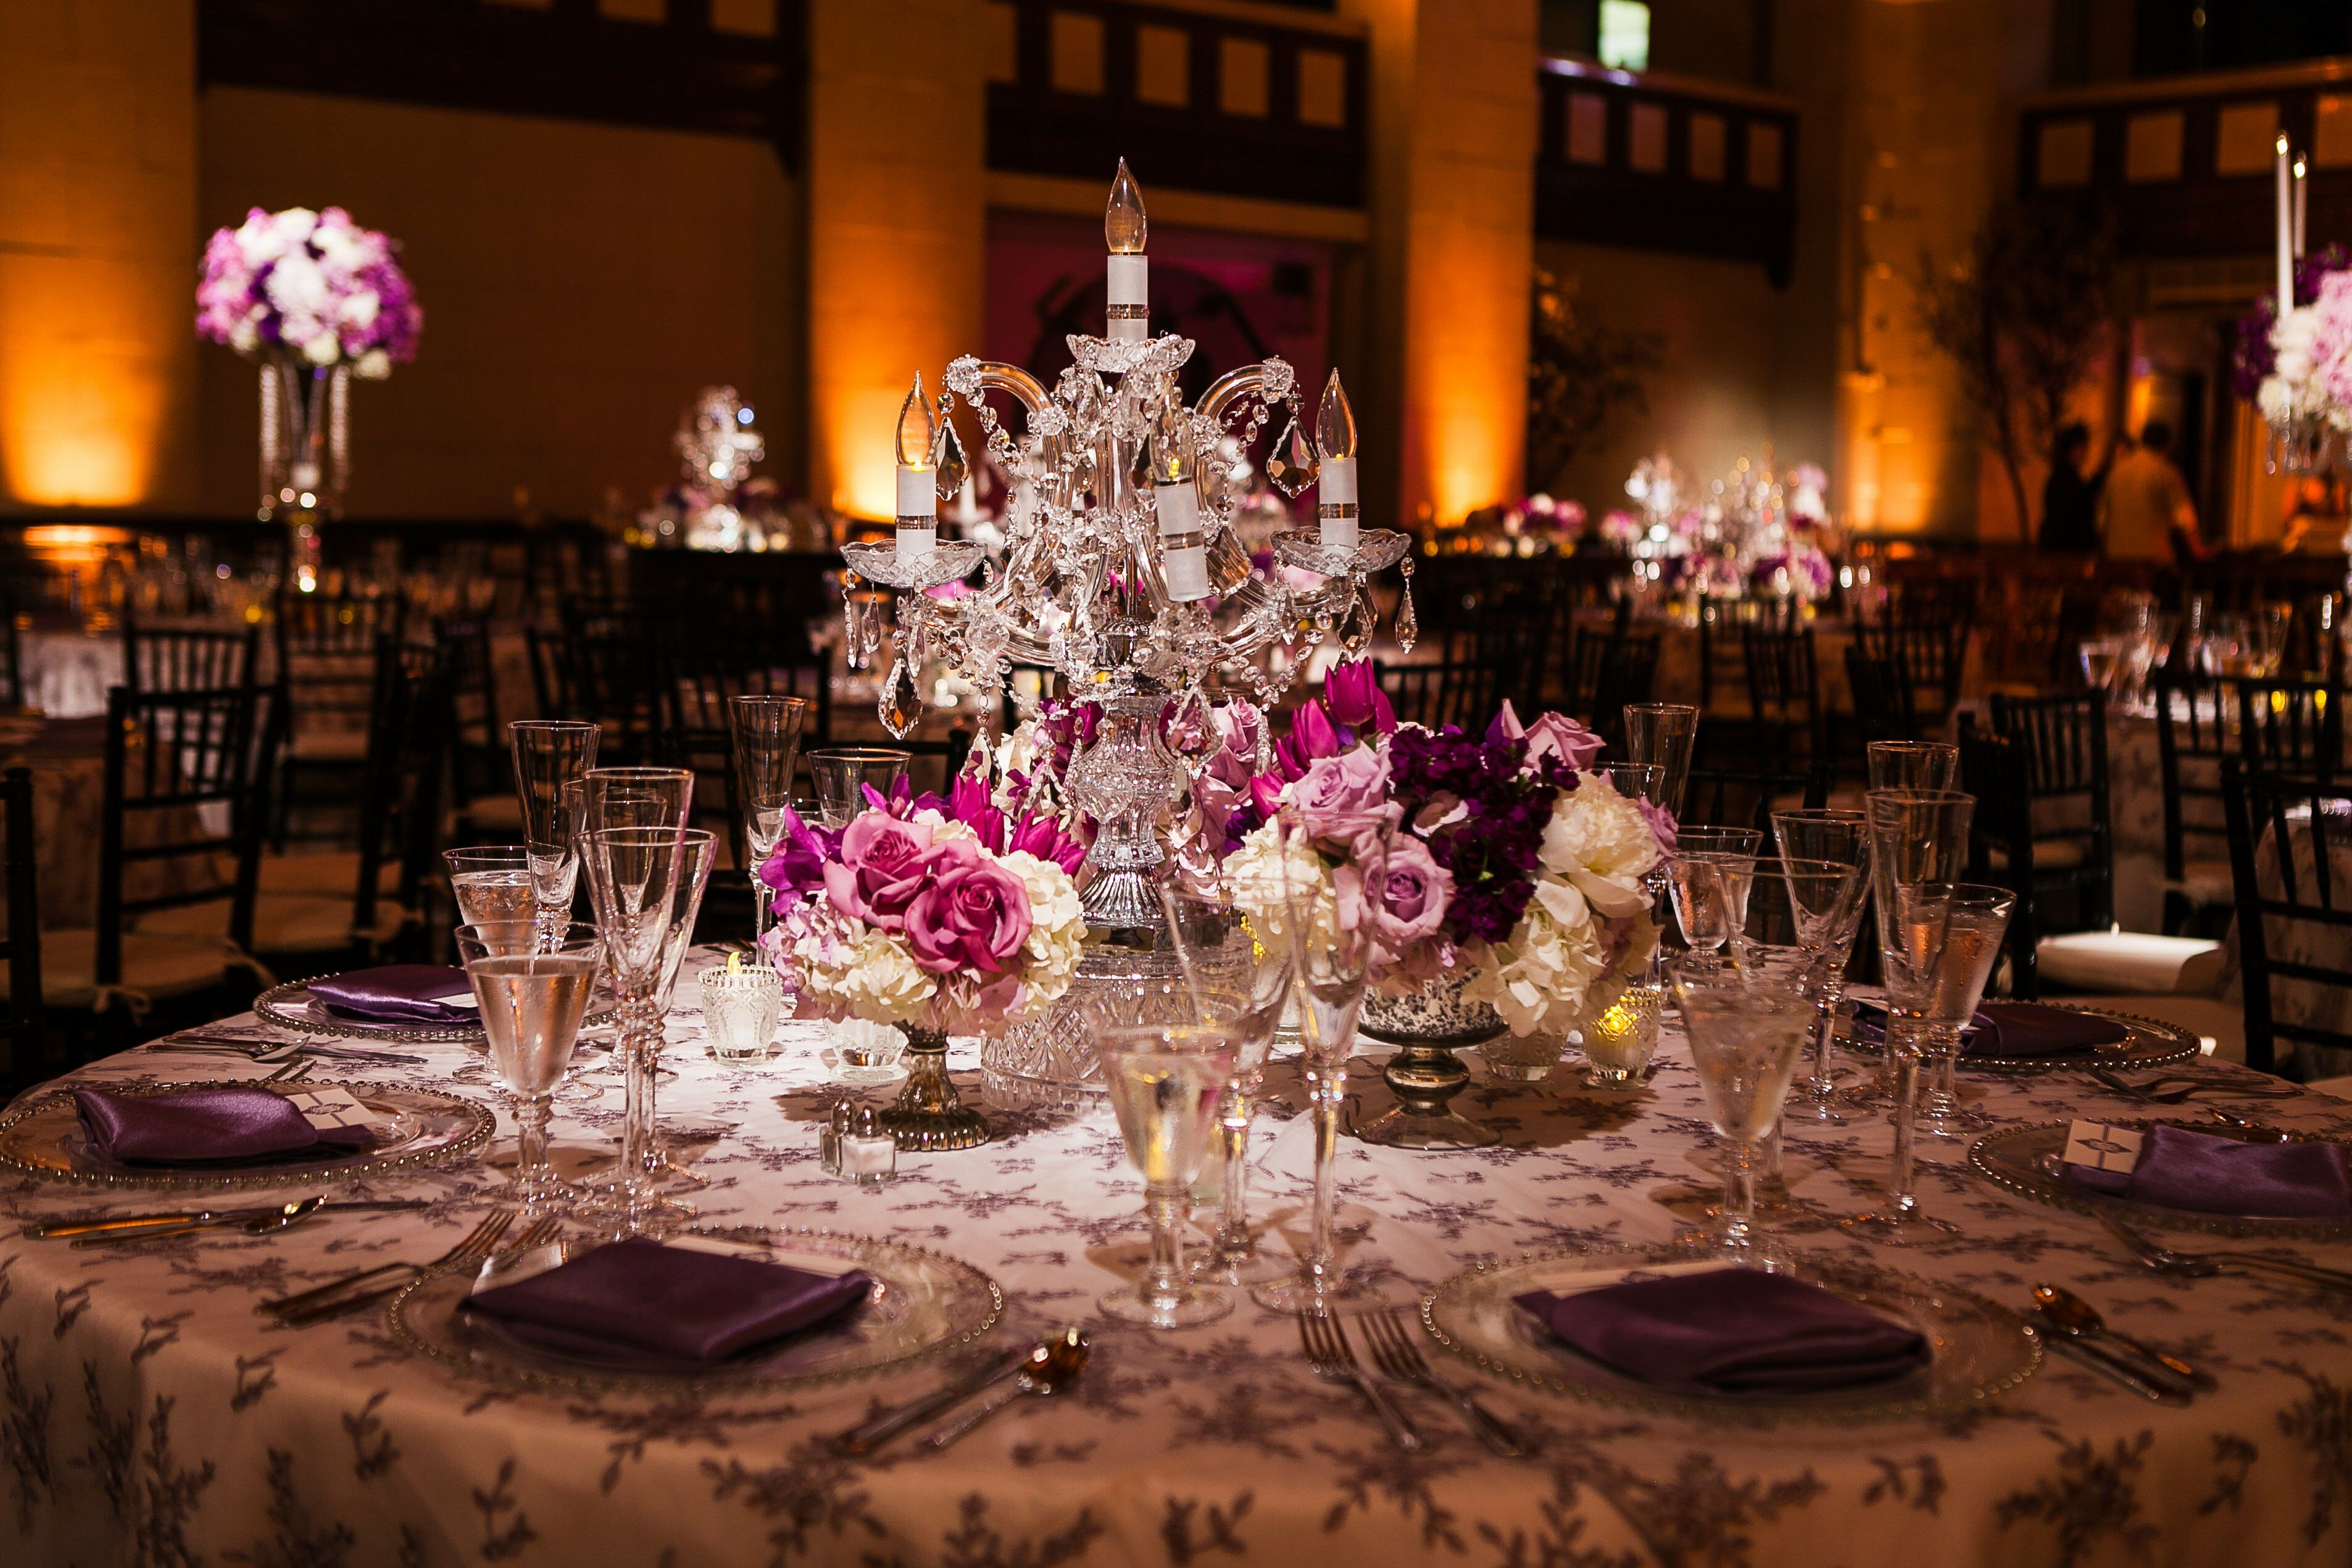 Small Candelabra Centerpieces : Candelabra centerpieces with small floral arrangements